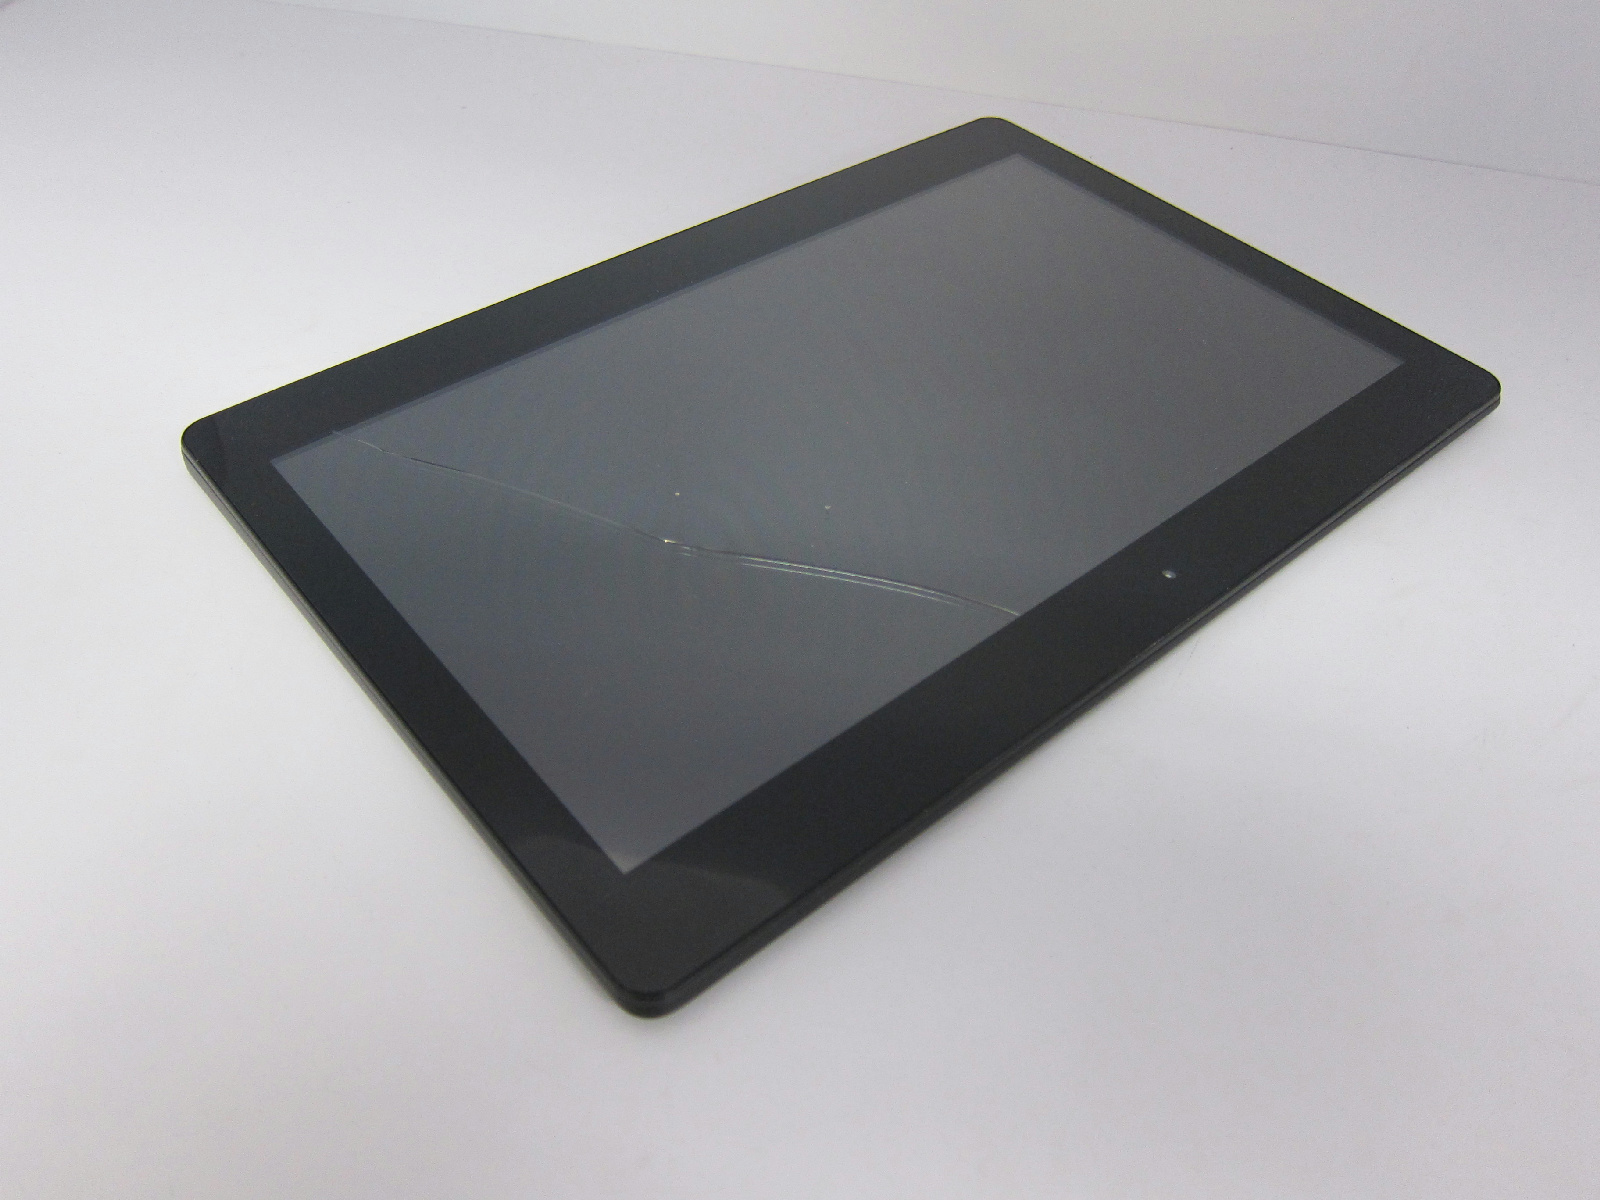 Nextbook android tablet cracked screen